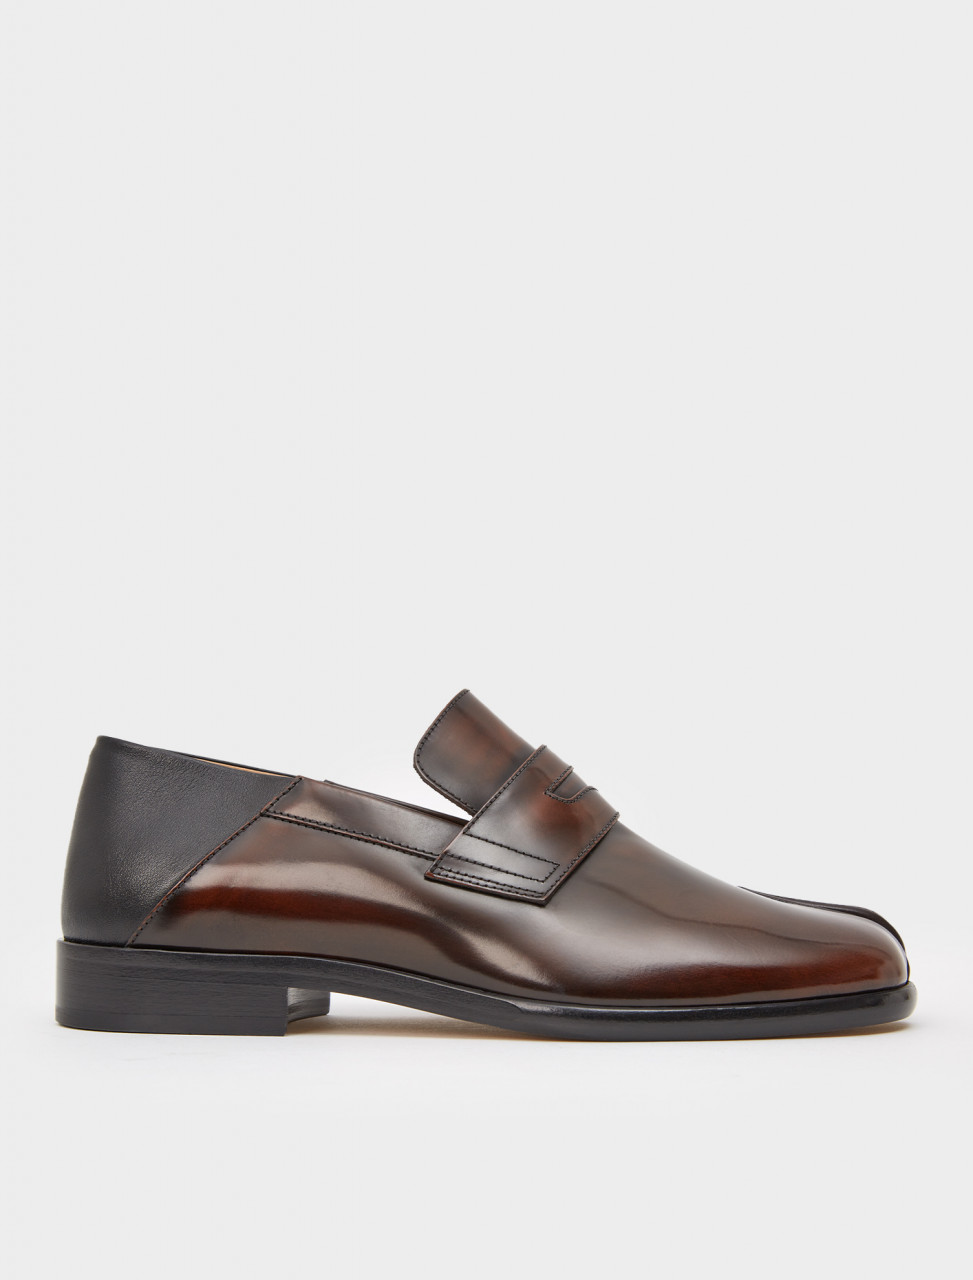 256-S37WR0176-P3716-H8323 MAISON MARGIELA TABI LEATHER LOAFERS DARK BROWN